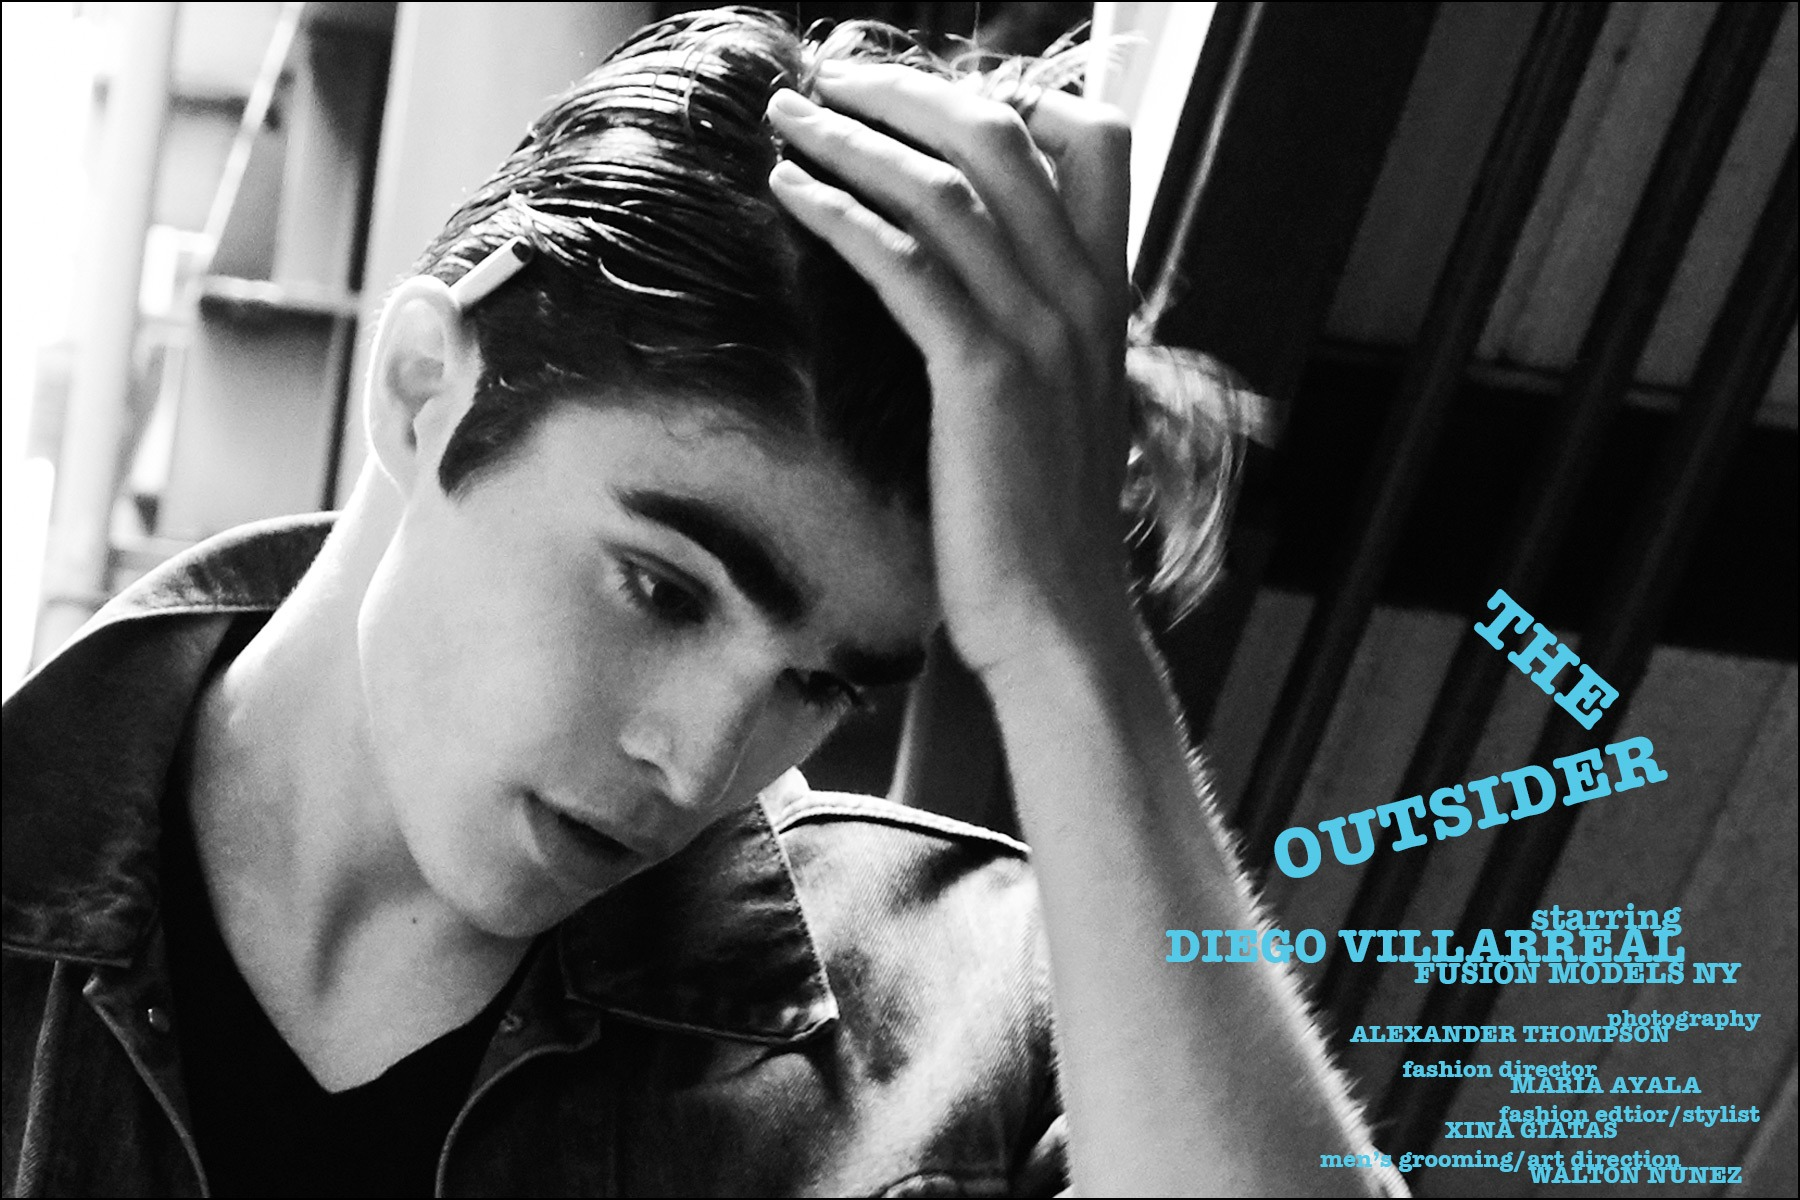 Fusion model Diego Villarreal stars in 1950's menswear editorial